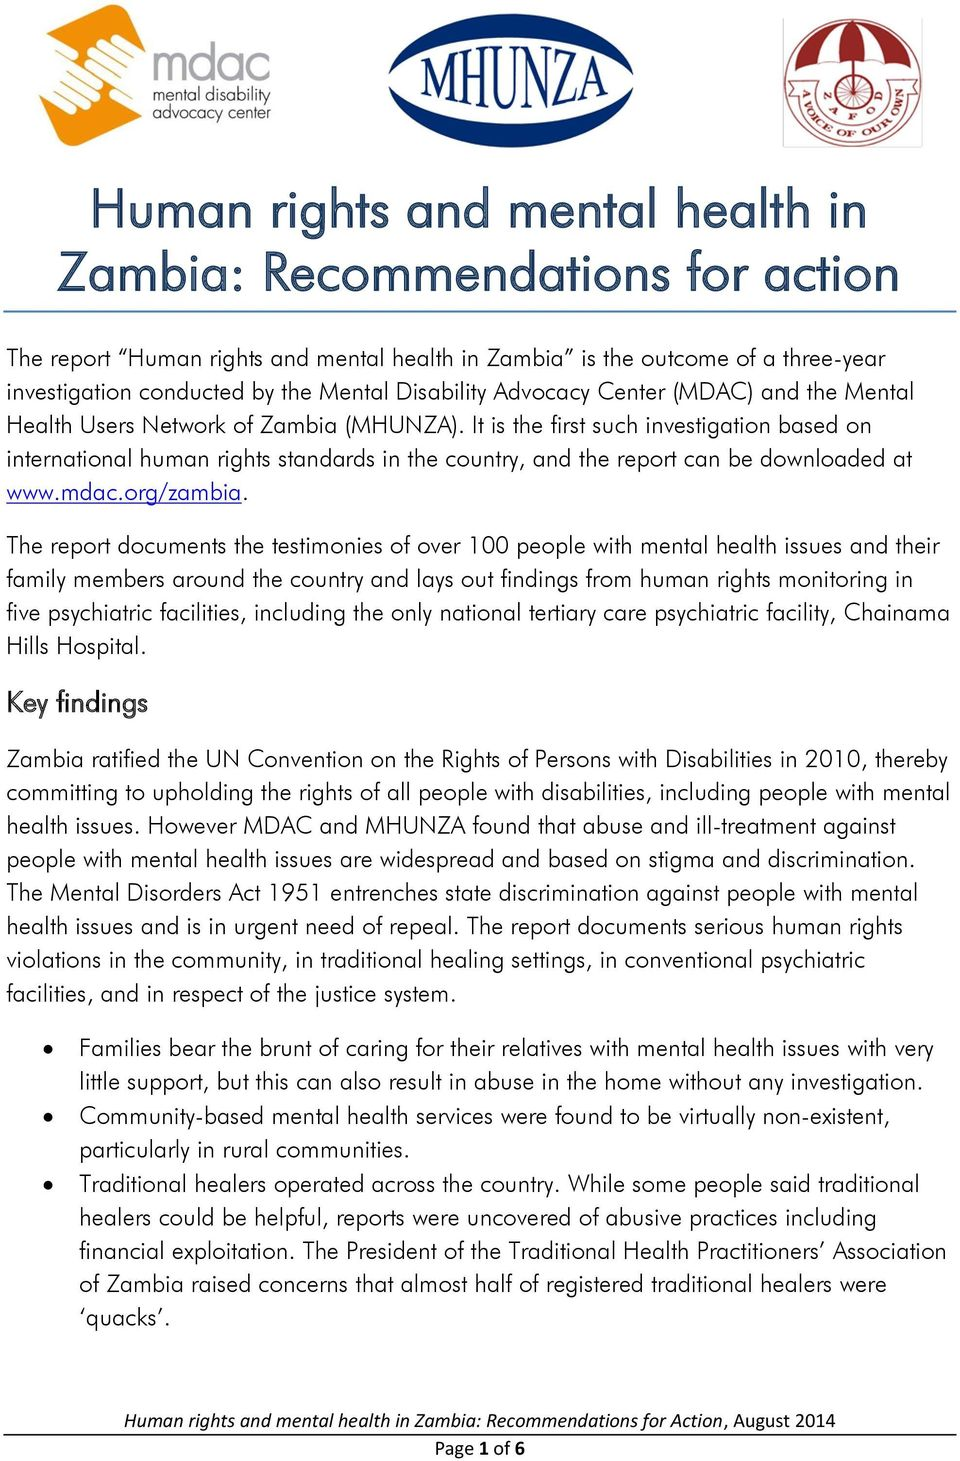 It is the first such investigation based on international human rights standards in the country, and the report can be downloaded at www.mdac.org/zambia.